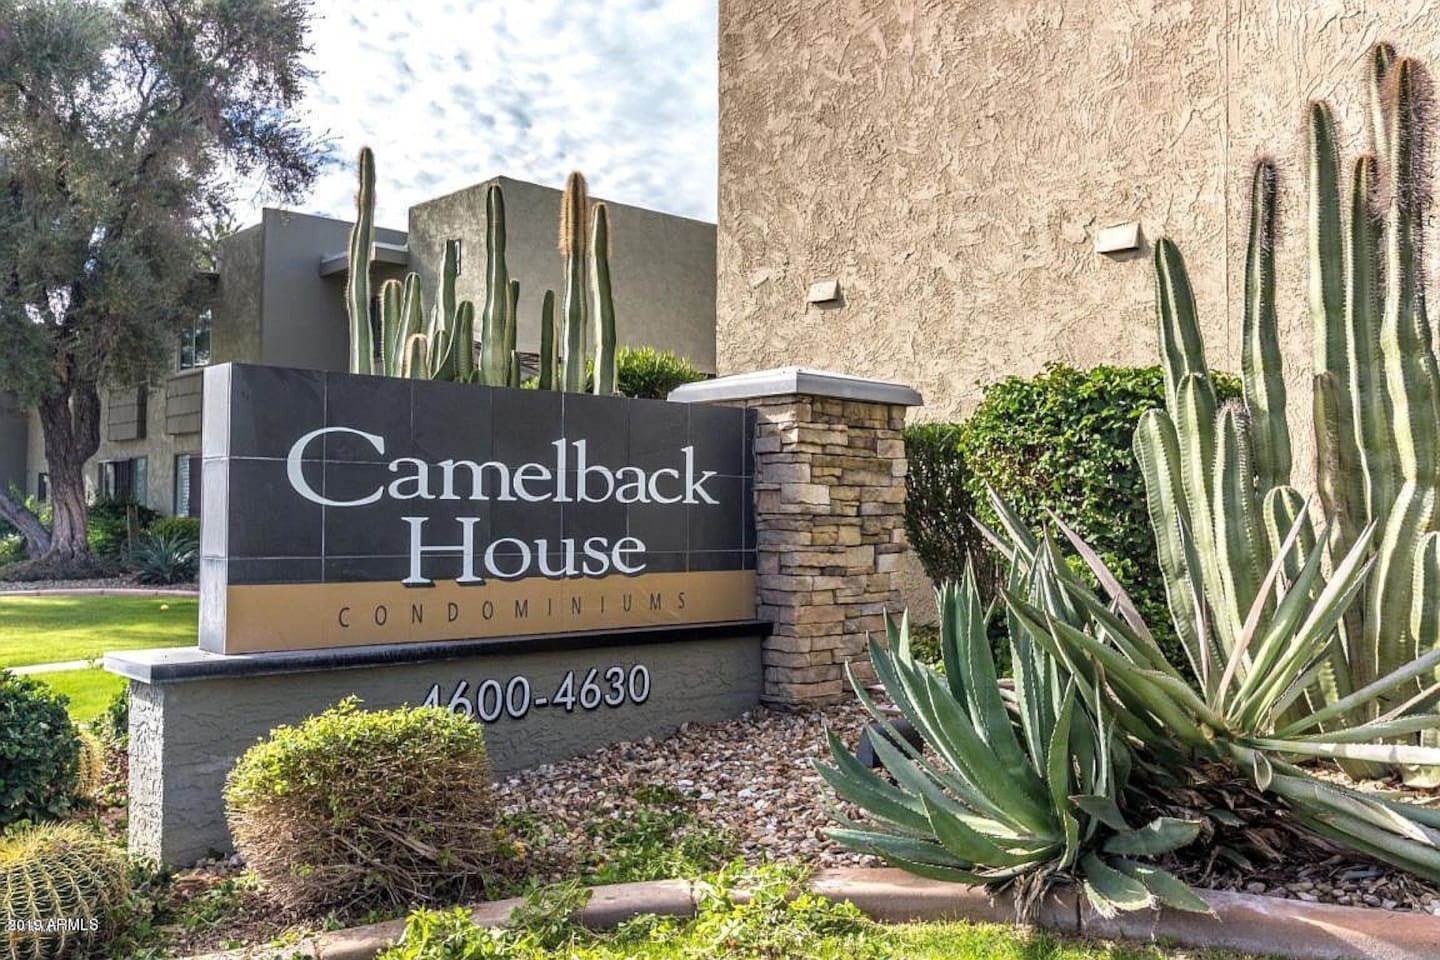 Welcome to Camelback House - a quiet and well- maintained oasis in the desert.